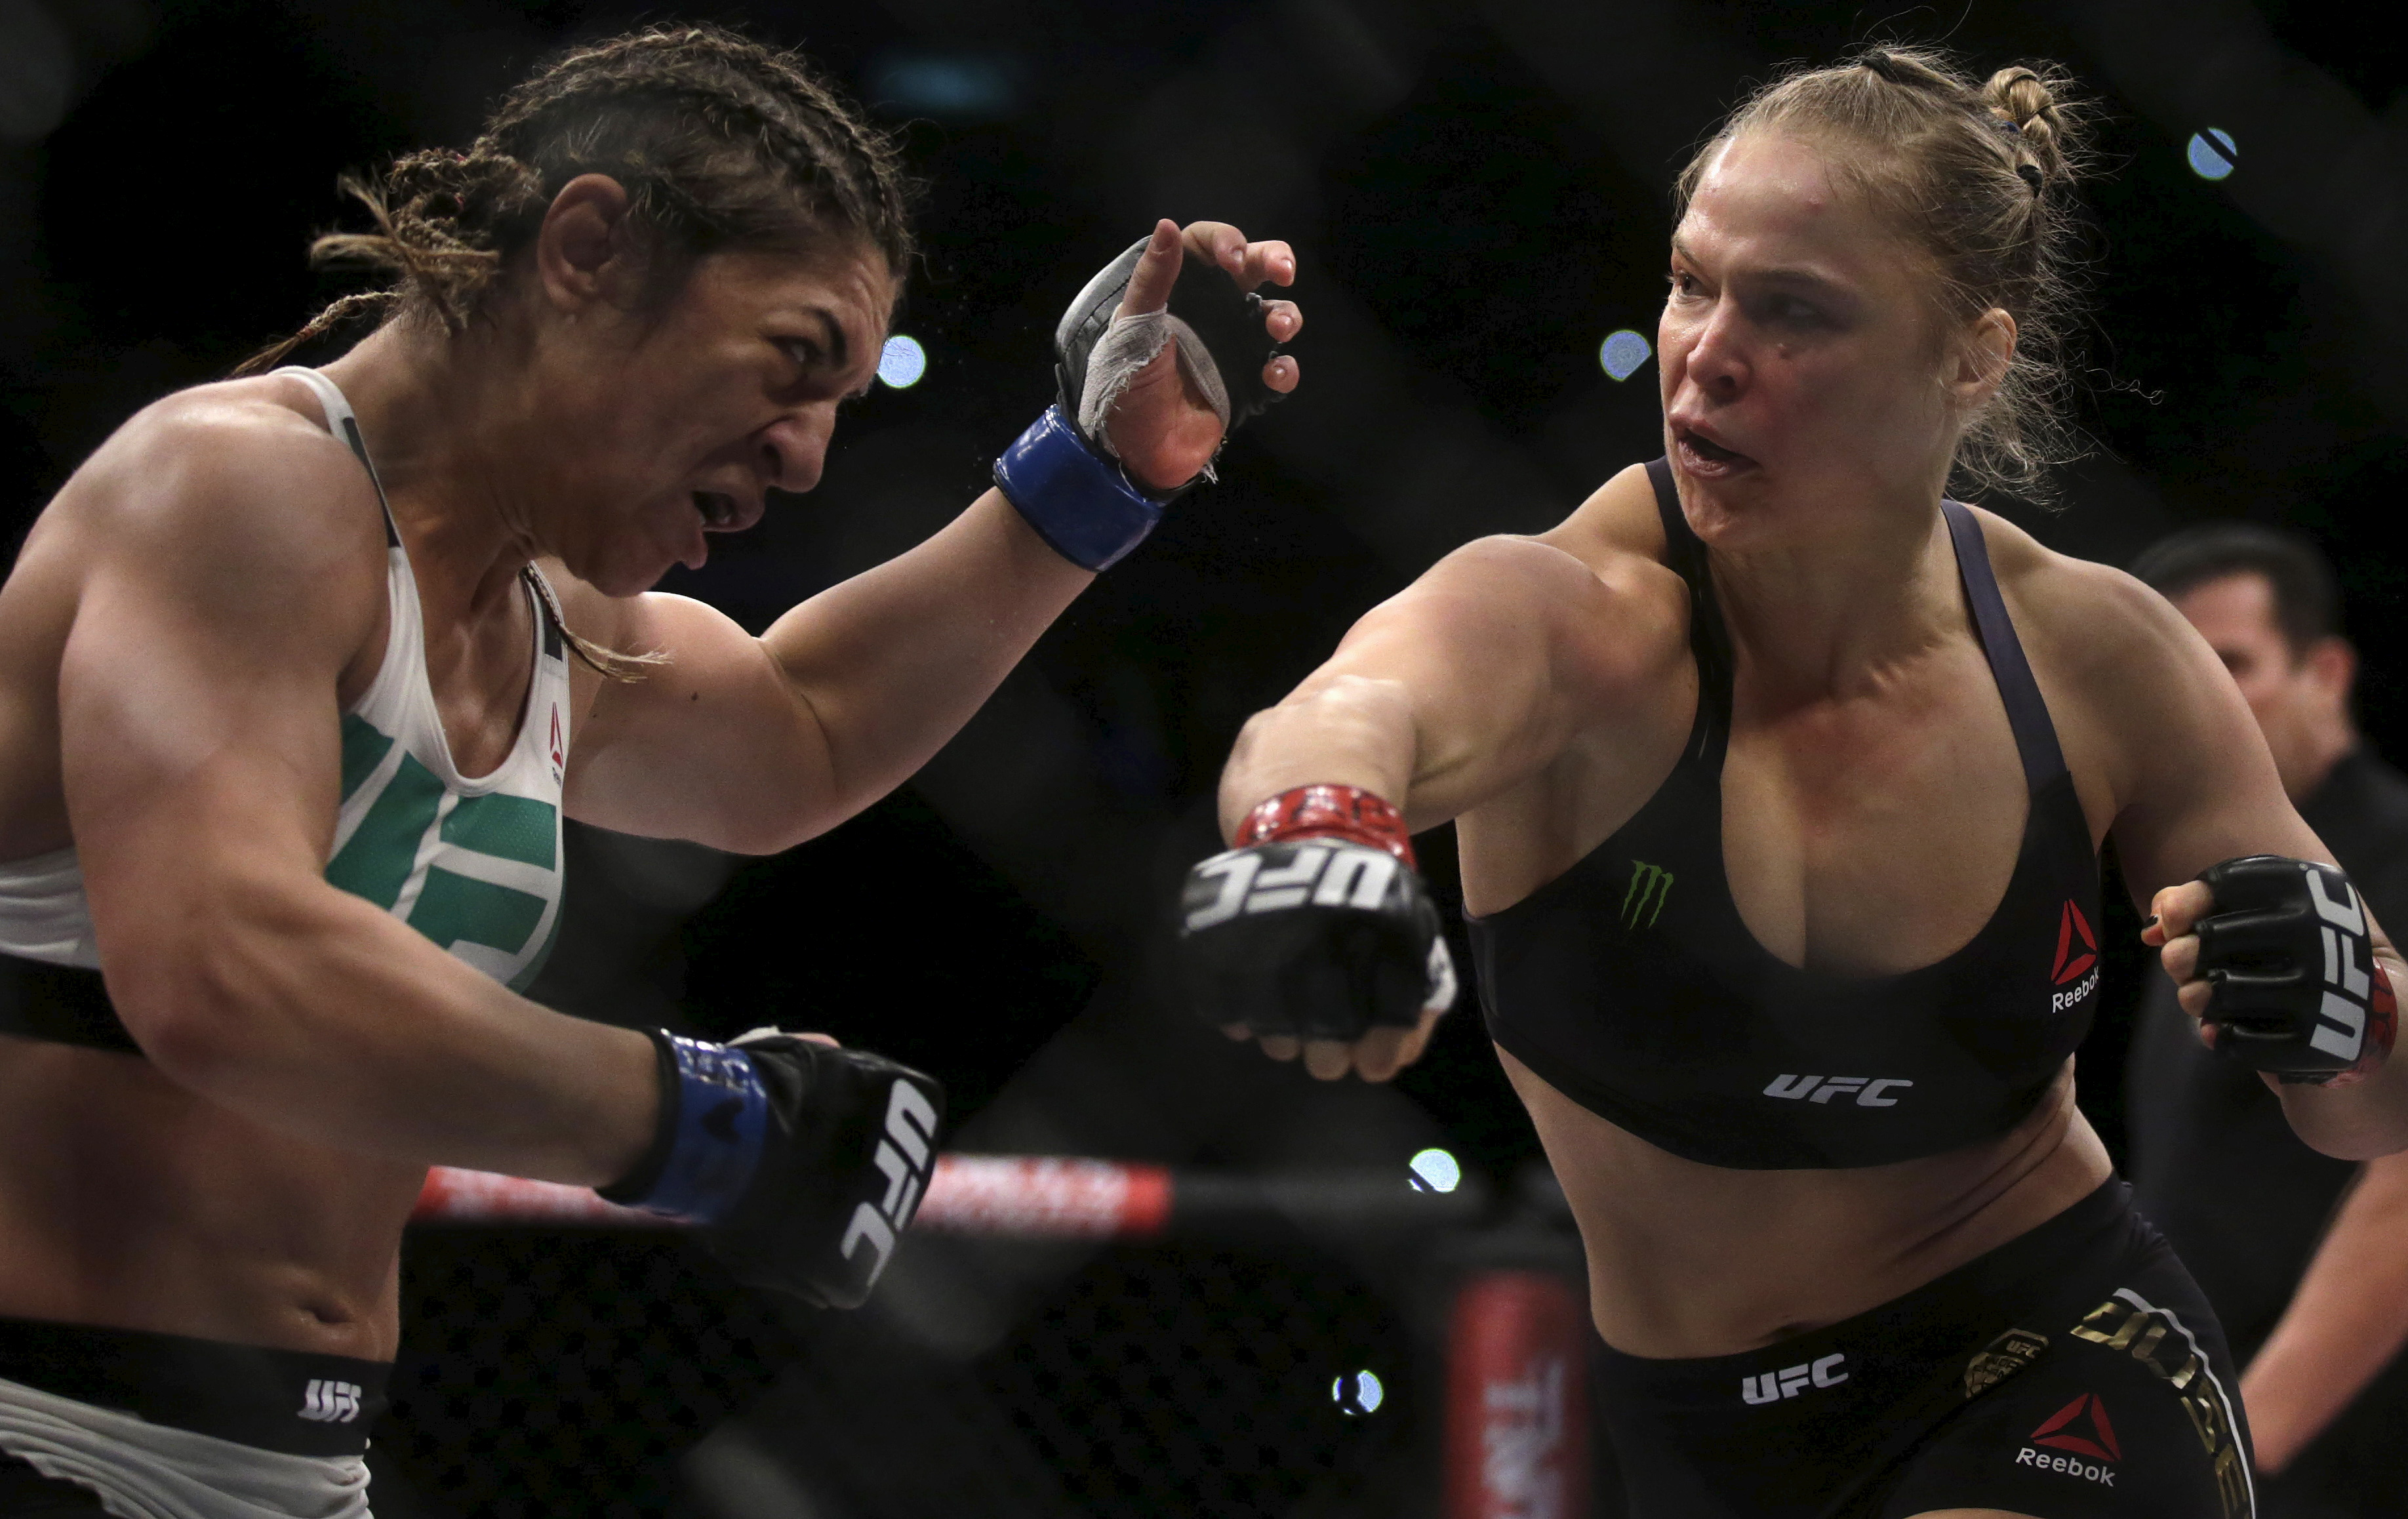 Rousey of U.S fights with Correia of Brazil during their UFC match in Rio de Janeiro